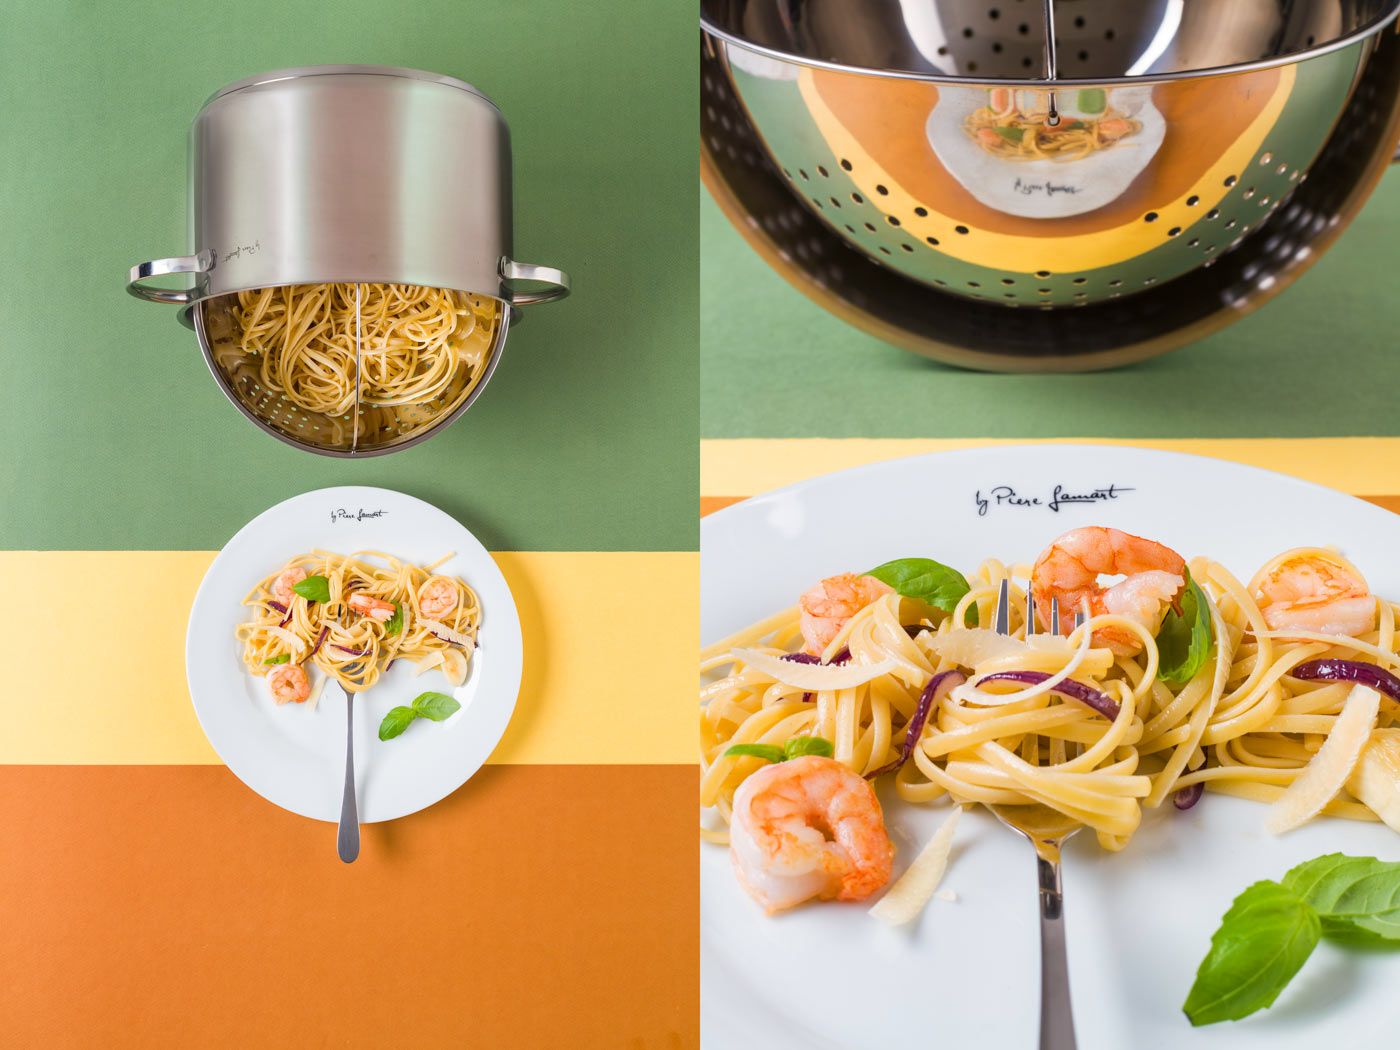 Recipe image of pasta with shrimp promoting the Lamart brand cookware